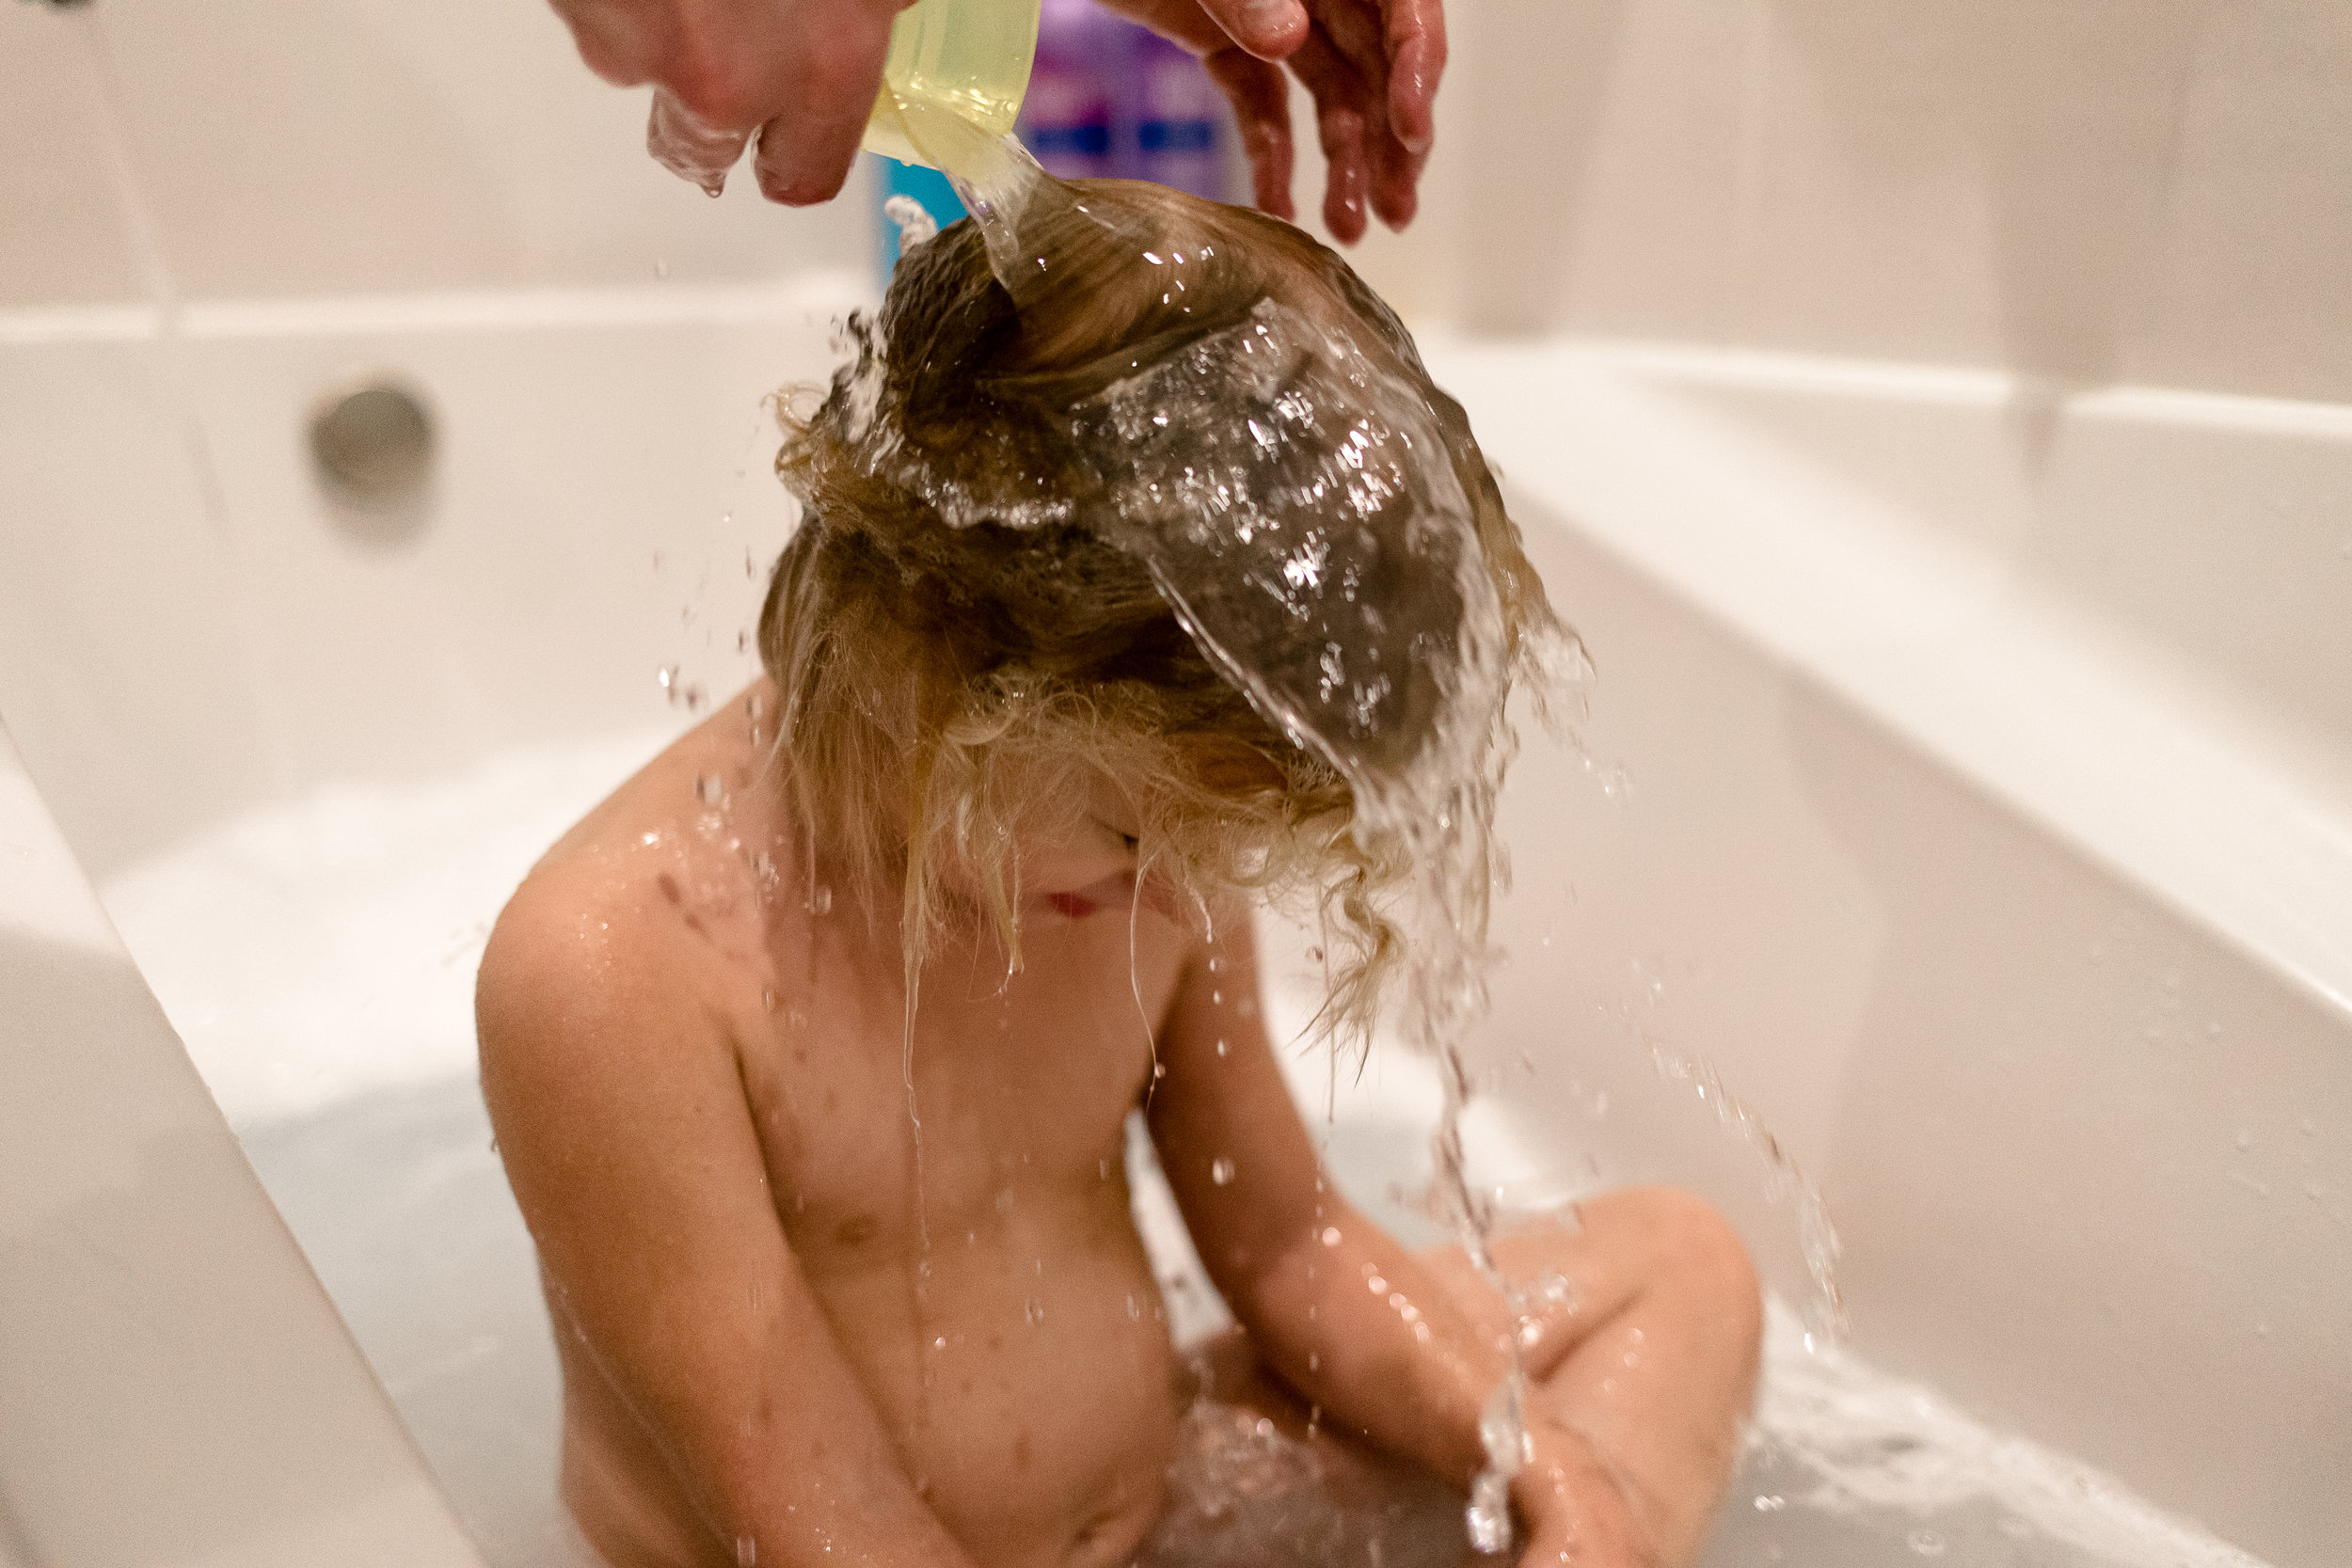 Daddy washing her hair.